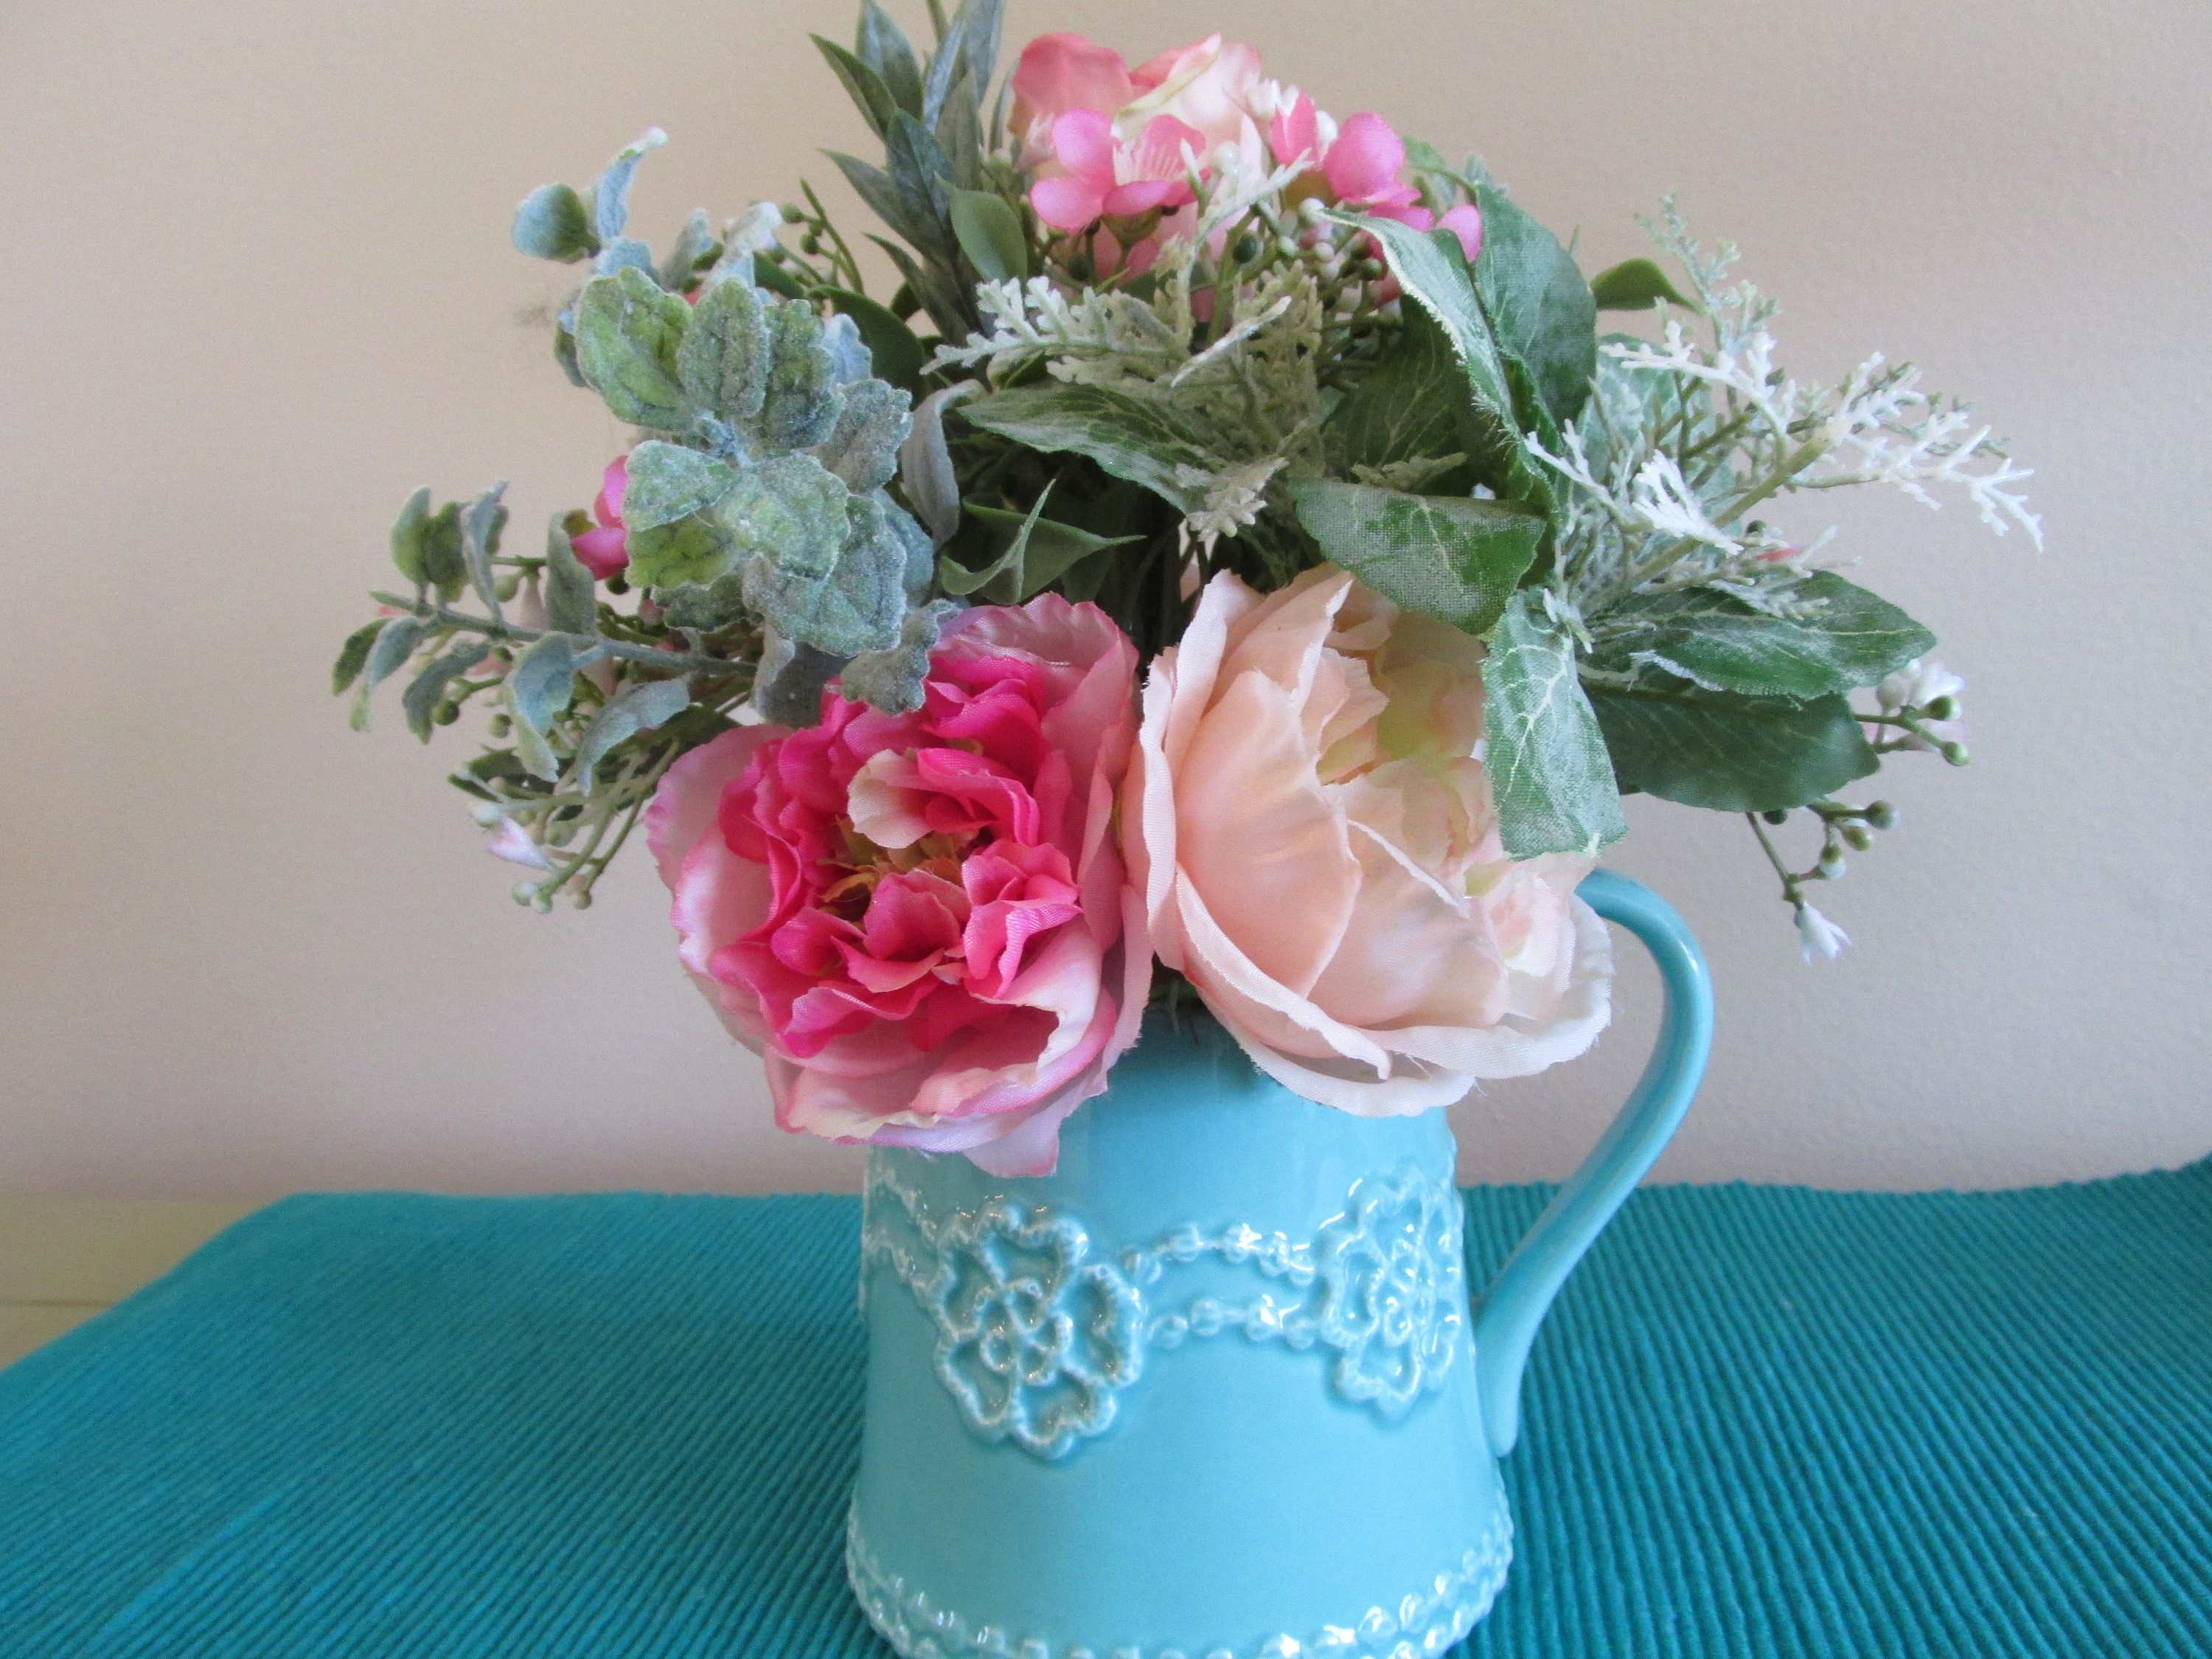 Summer flower arrangement silk roses pink roses turquoise pitcher pretty summer floral small enough to fit almost anywhere see it at mightylinksfo